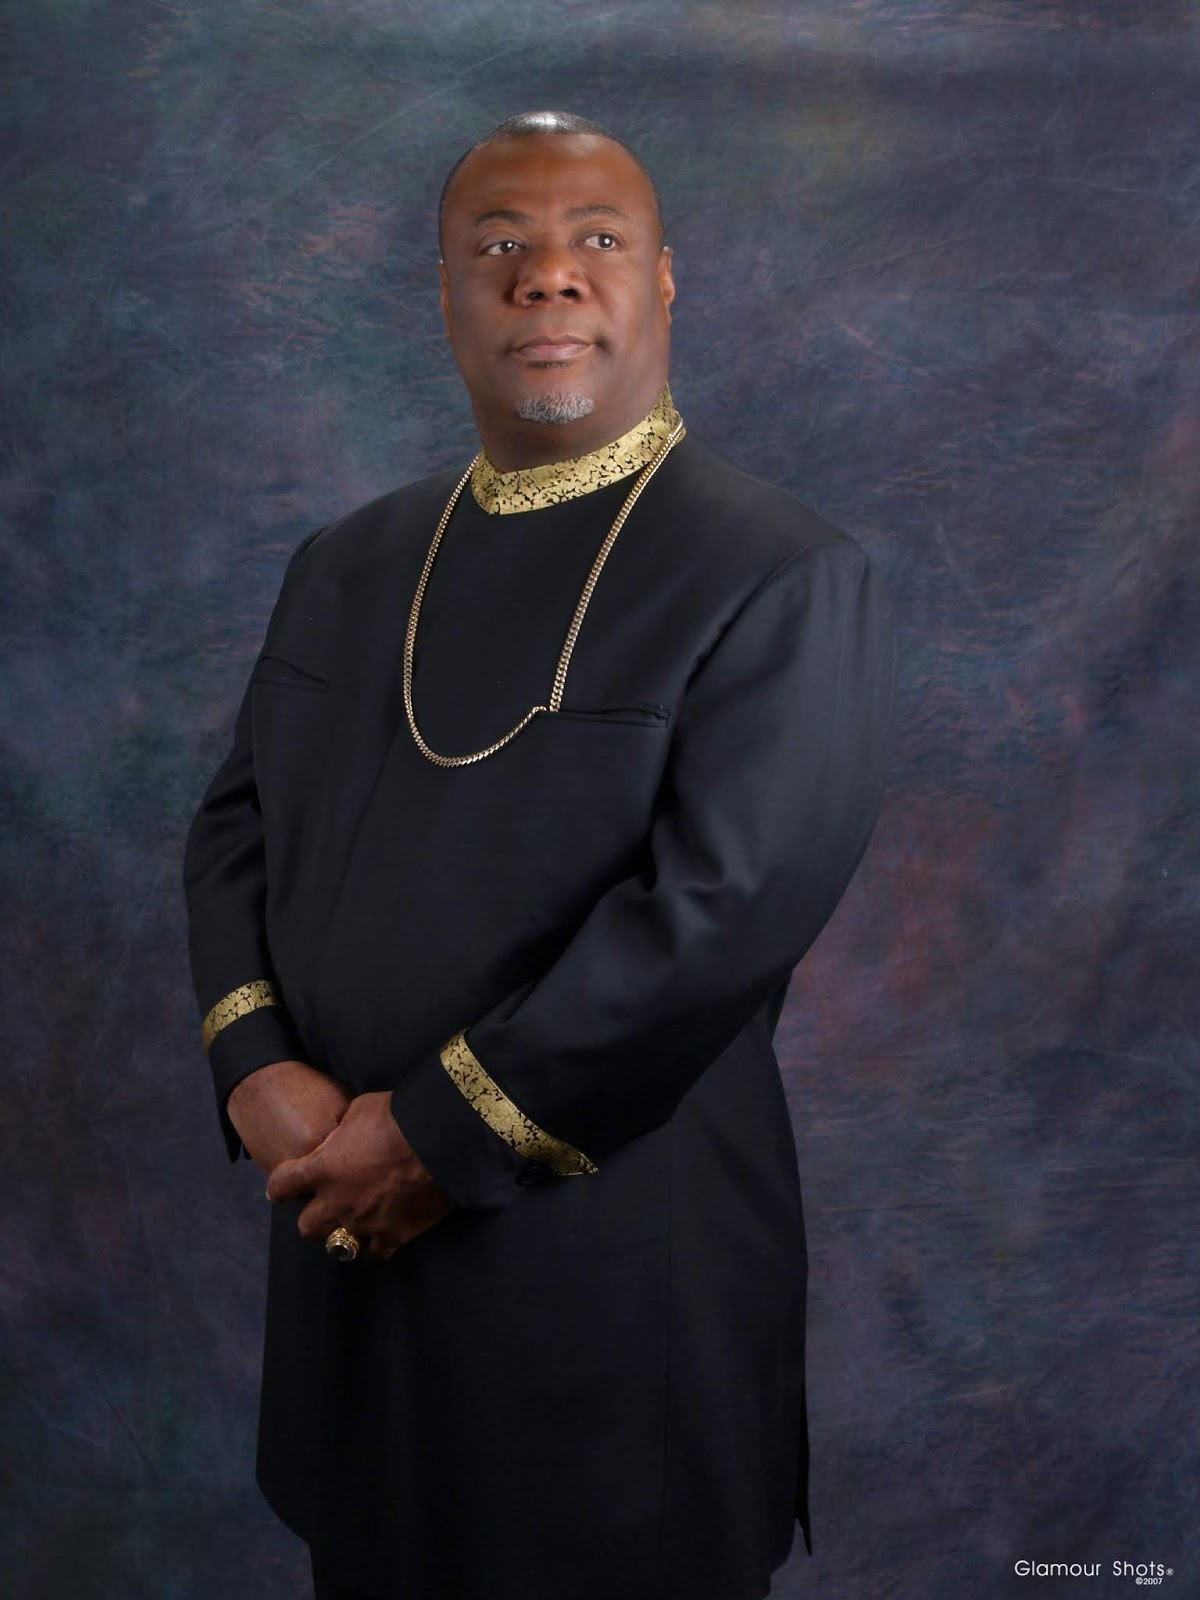 Archbishop Duncan Williams